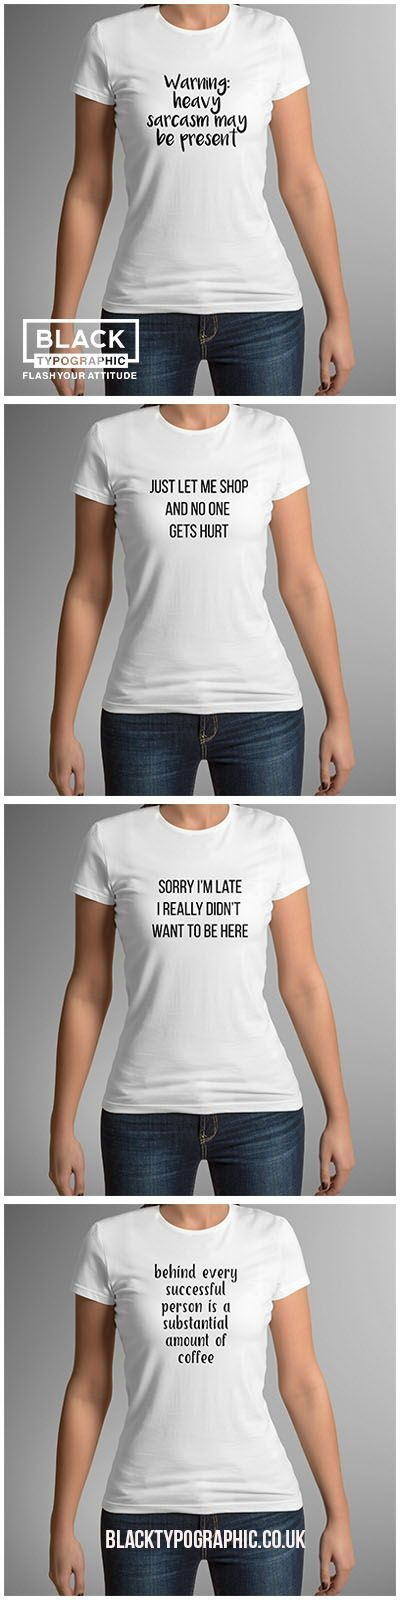 Funny T shirts for Women. Made in the UK using high quality cotton t shirt and black vinyl.  Flash your attitude while you show of your fashion style. funny t shirts, t shirts for women, white t shirt, t shirt with sayings, quote t shirt, #funnytshirt #wh